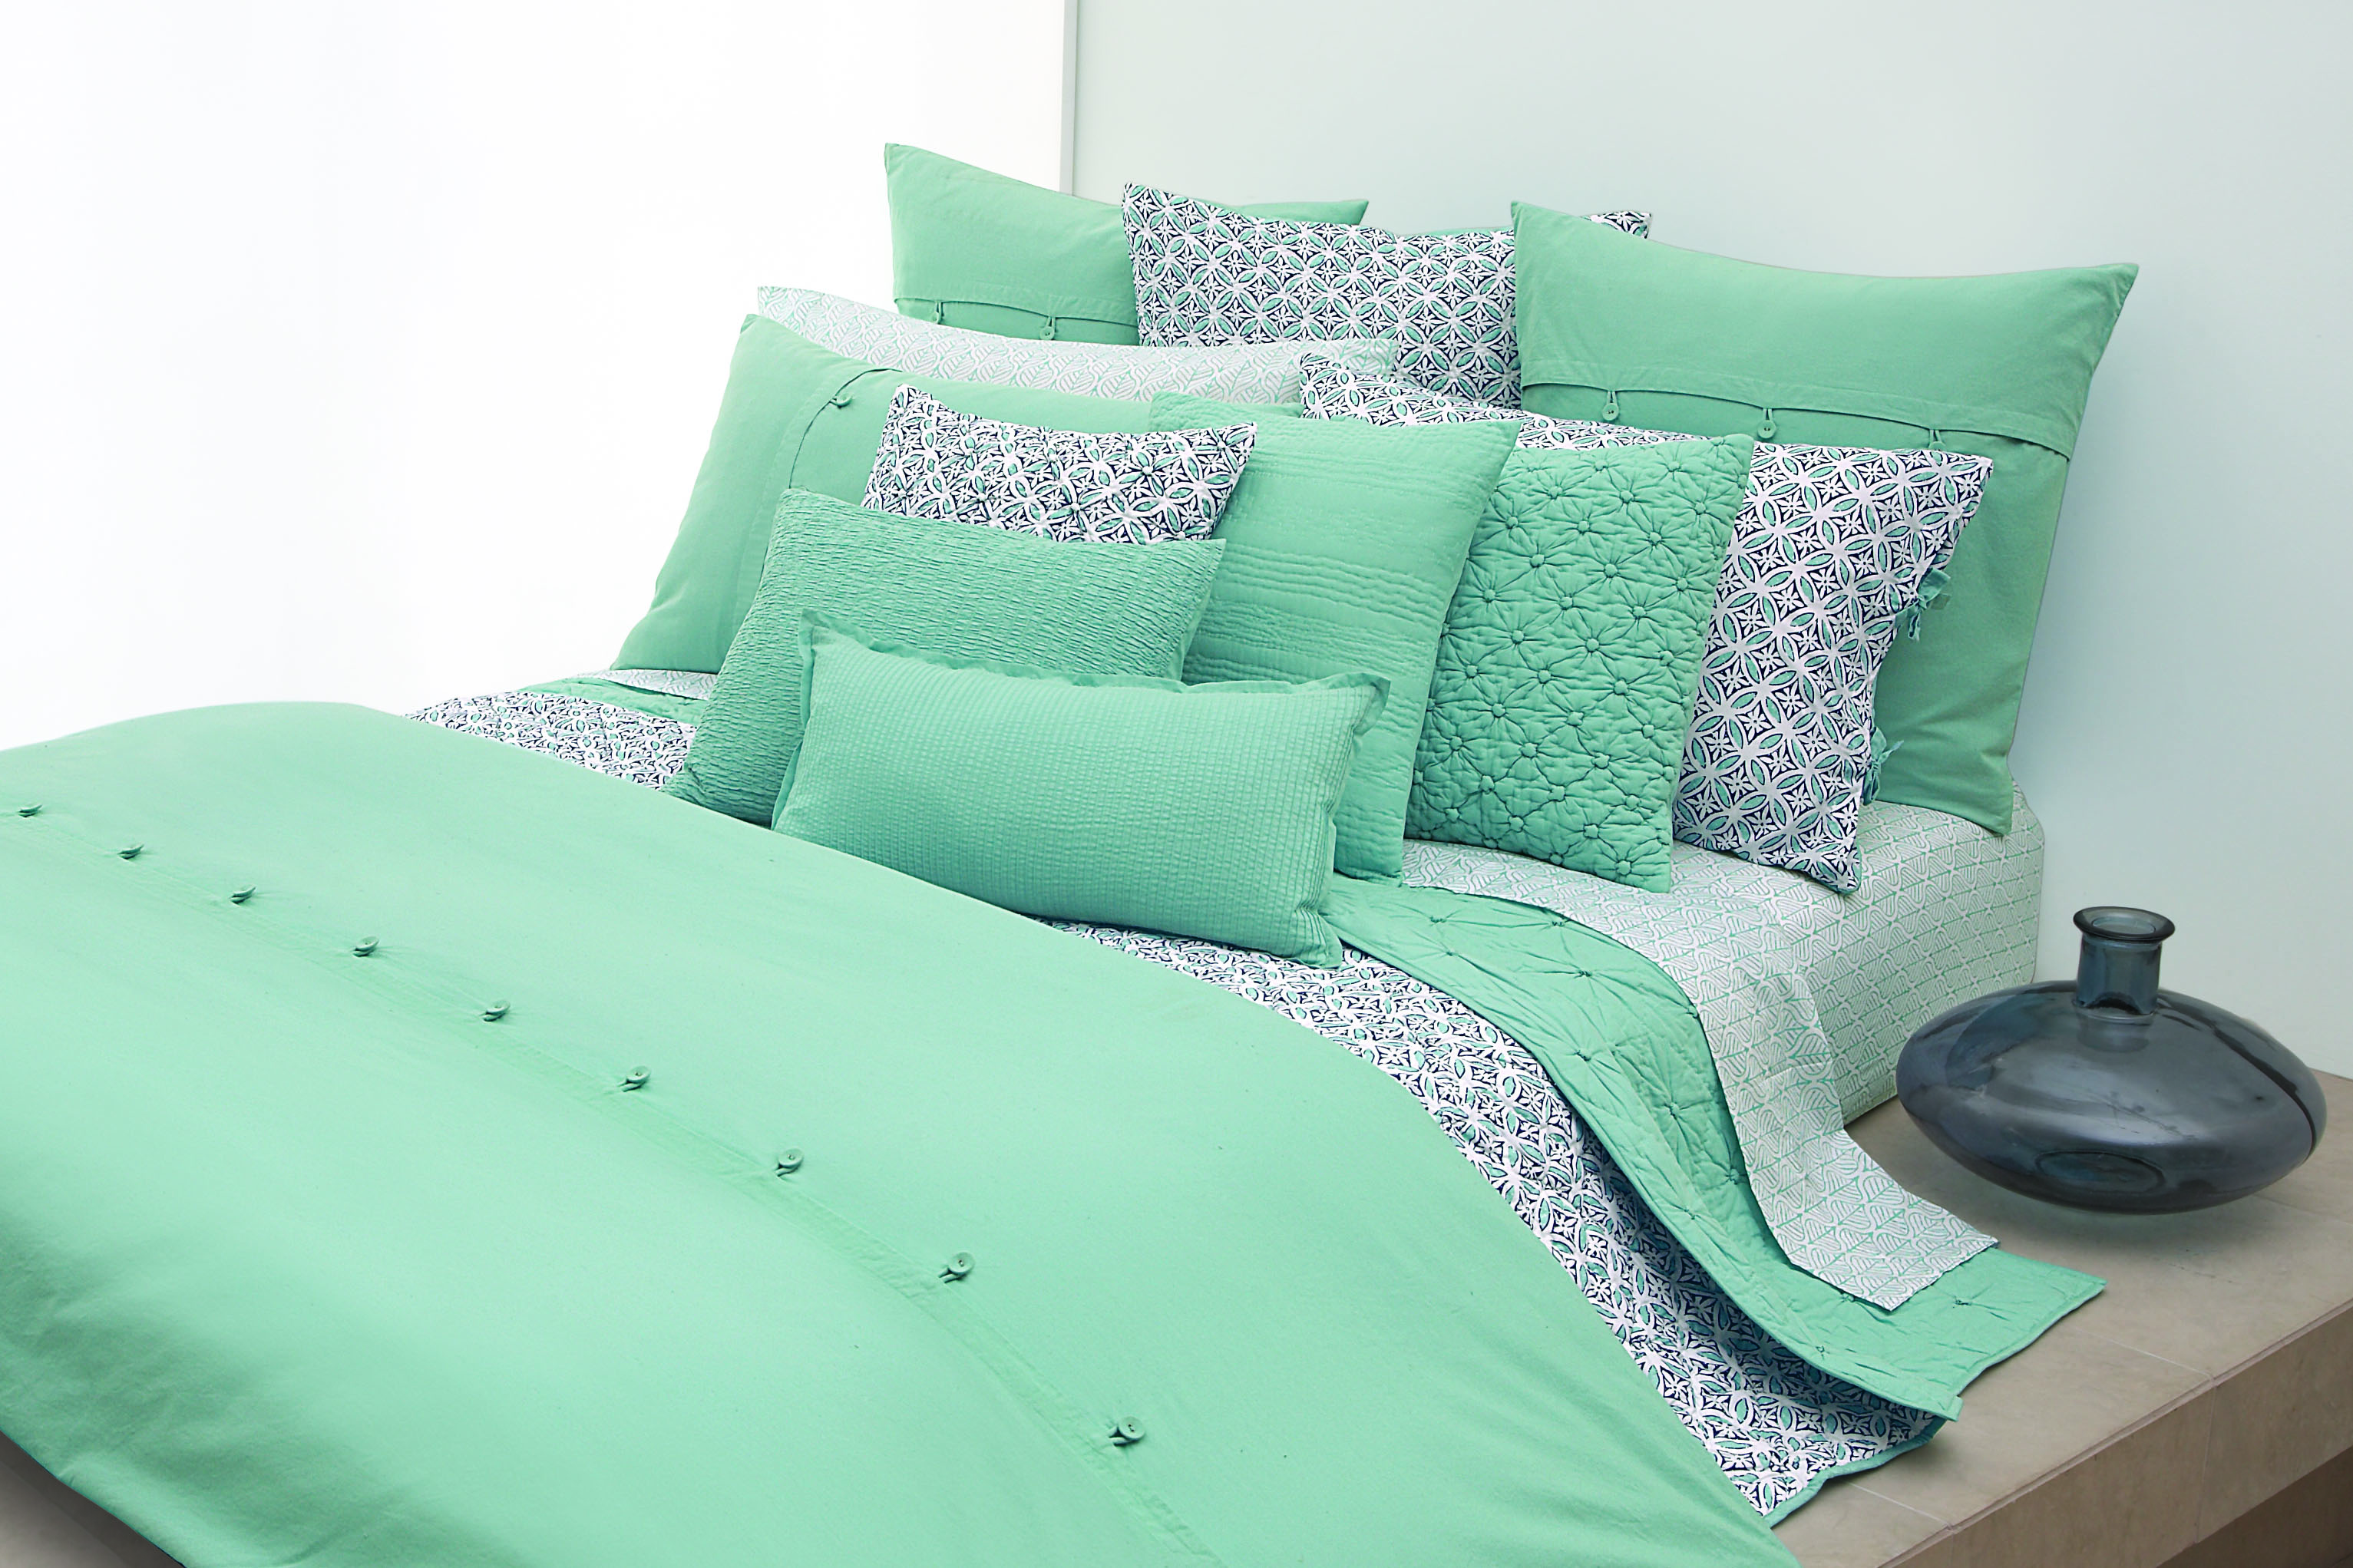 Http Www Sheknows Com Home And Gardening Articles 1005005 Fabulous Sheets And Bedding